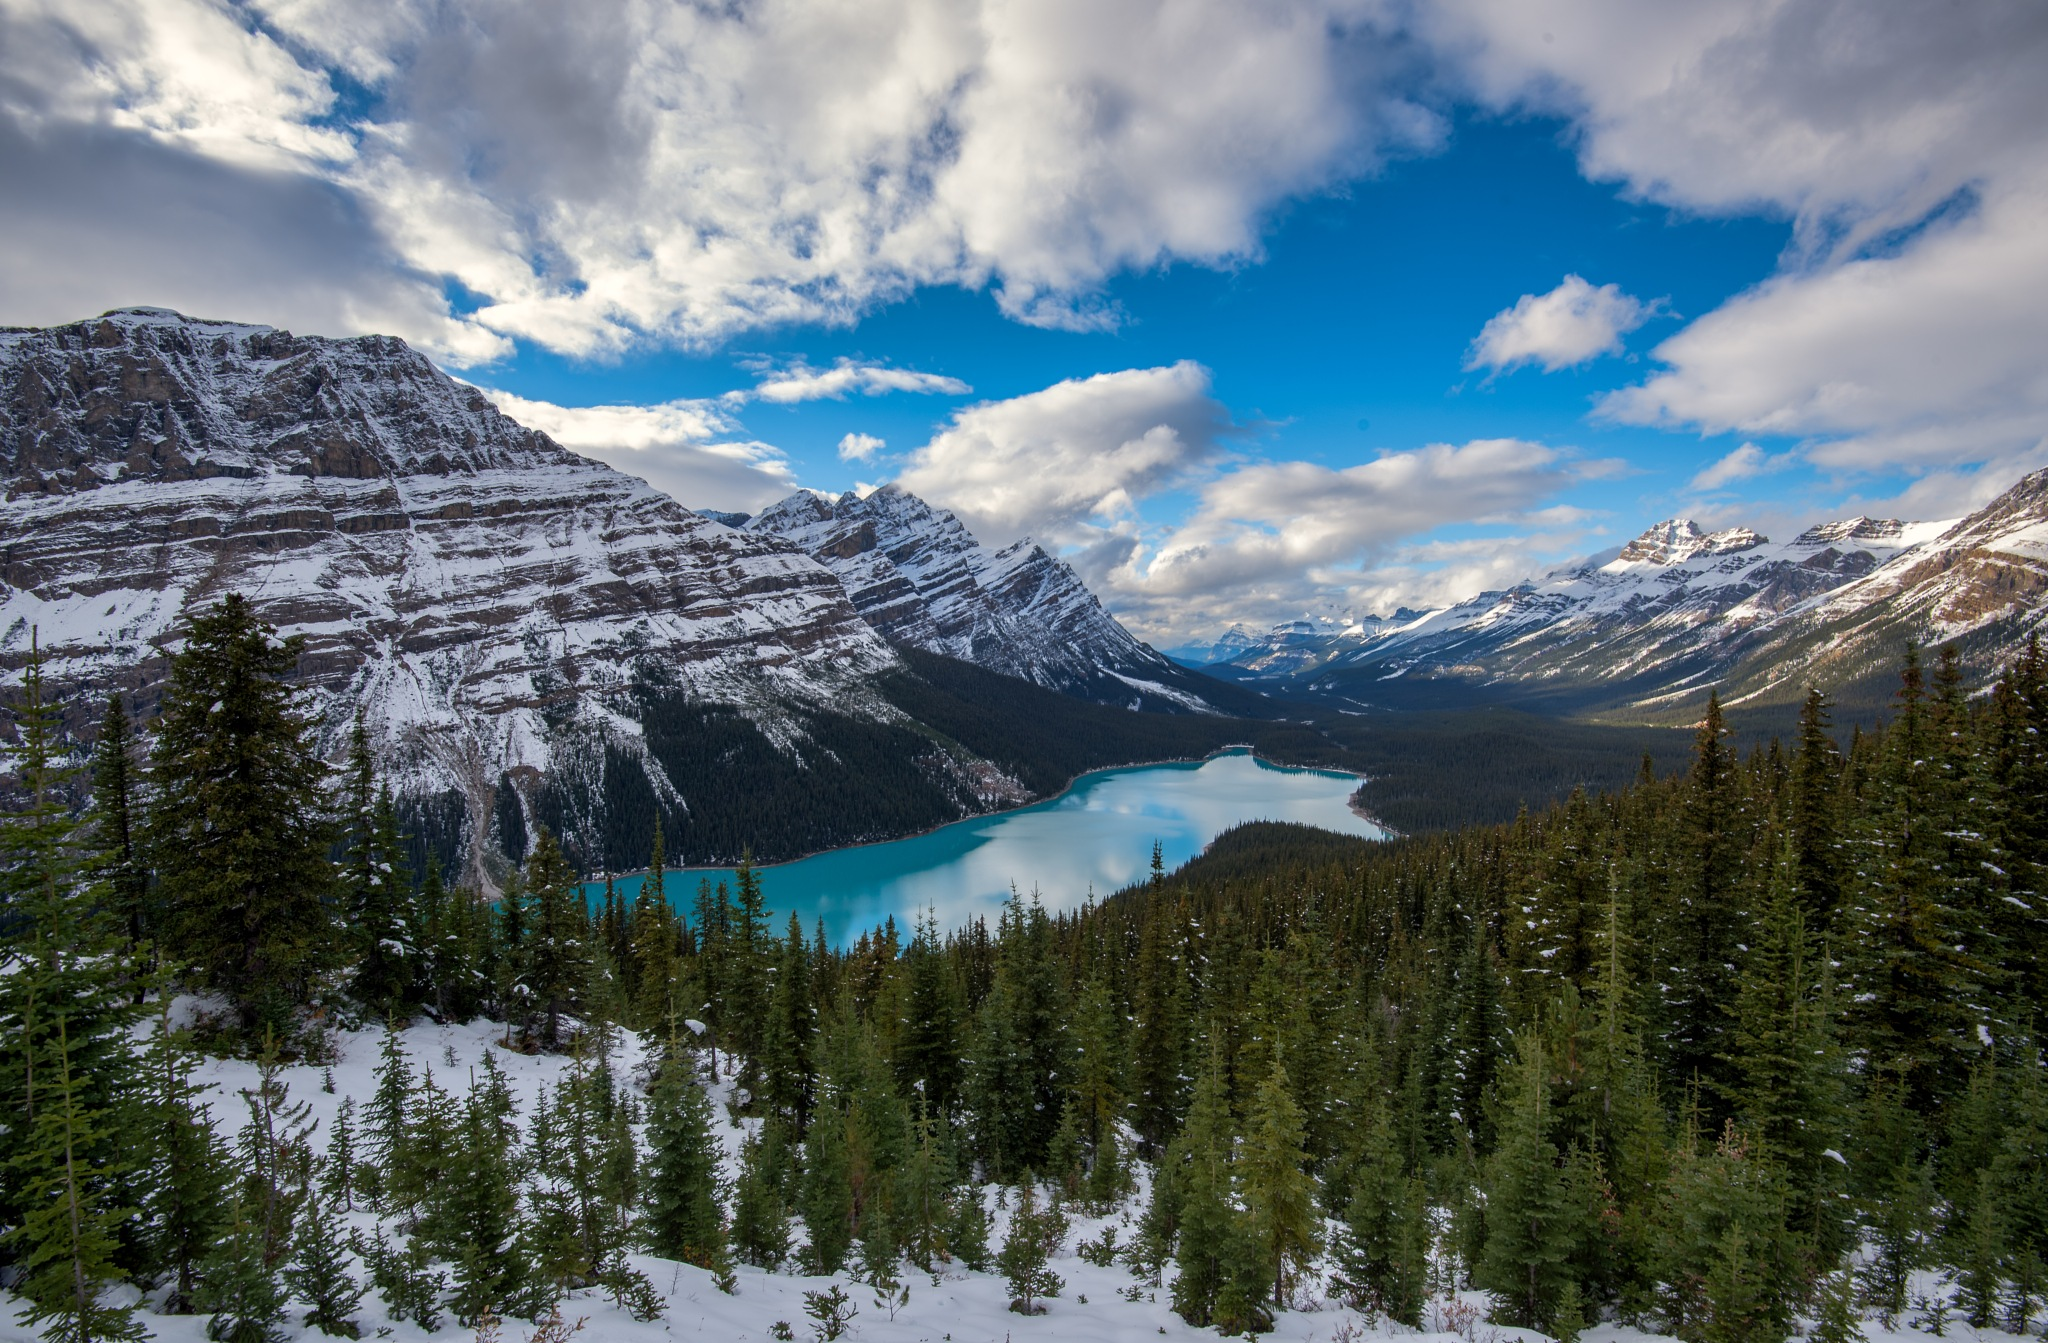 Reflections is Peyto Lake by Valerie Dyer